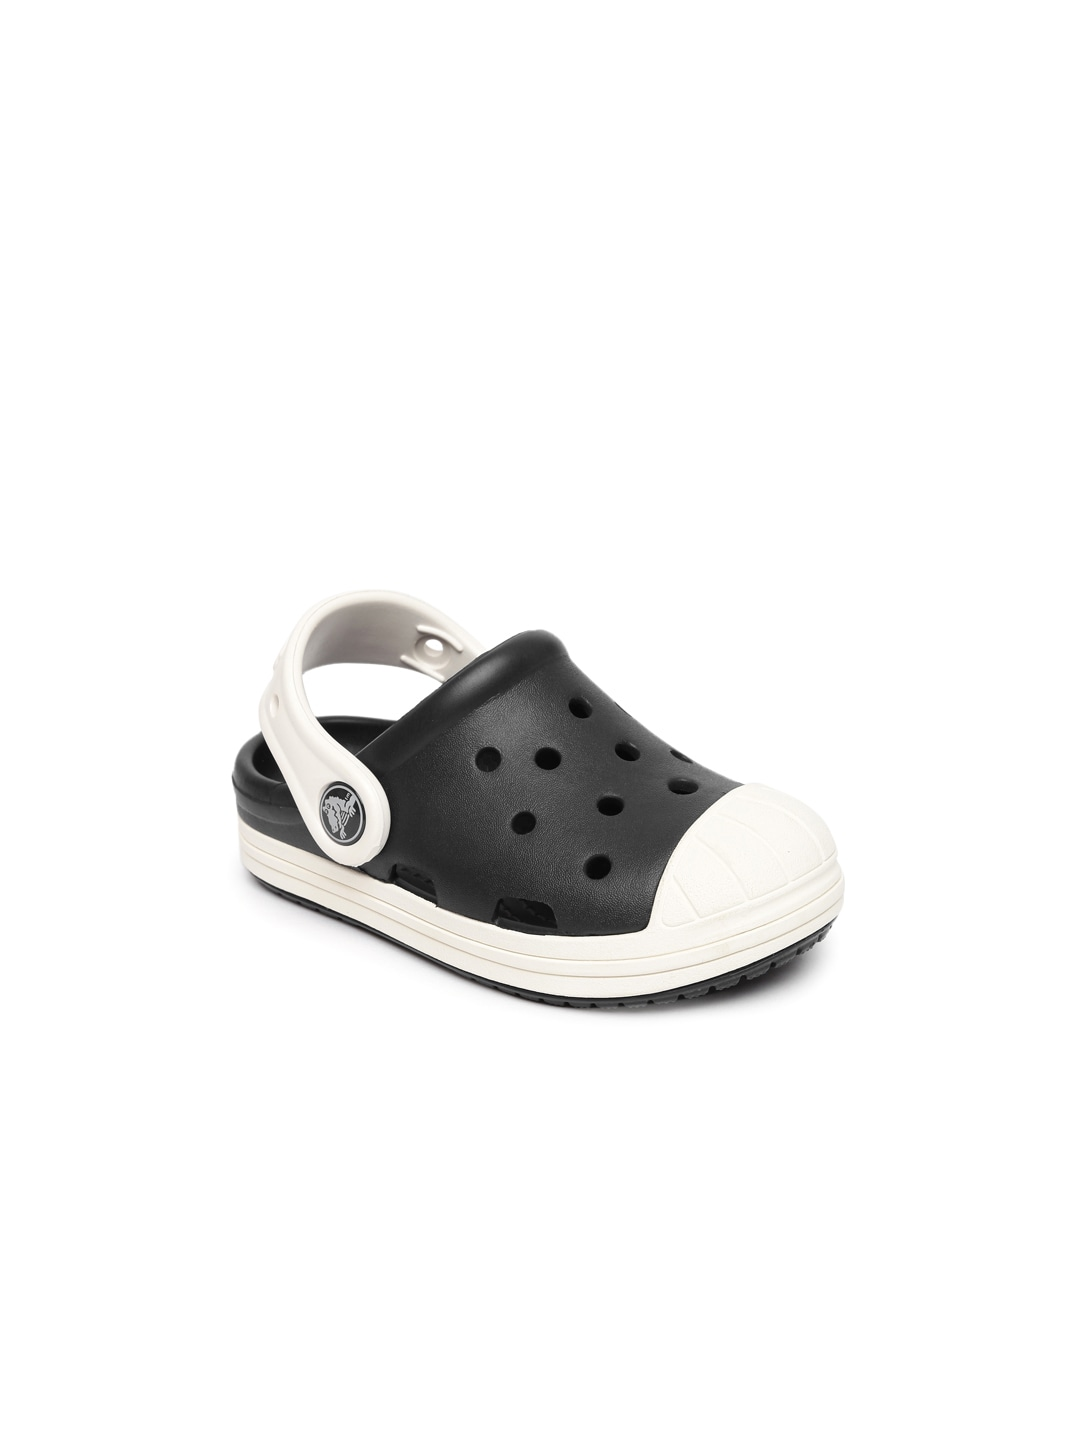 Crocs Kids Black & White Colourblocked Clogs